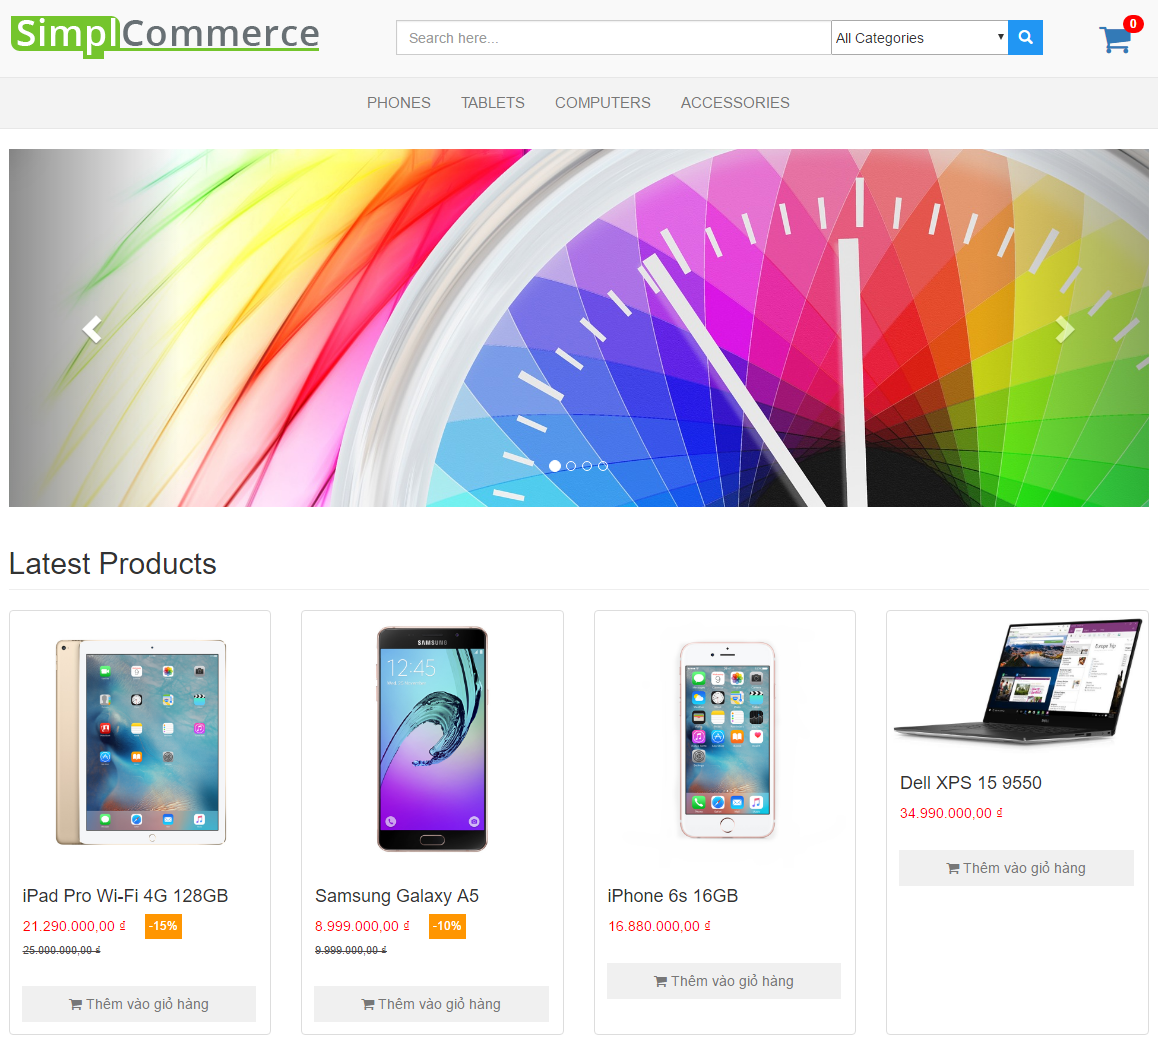 SimplCommerce